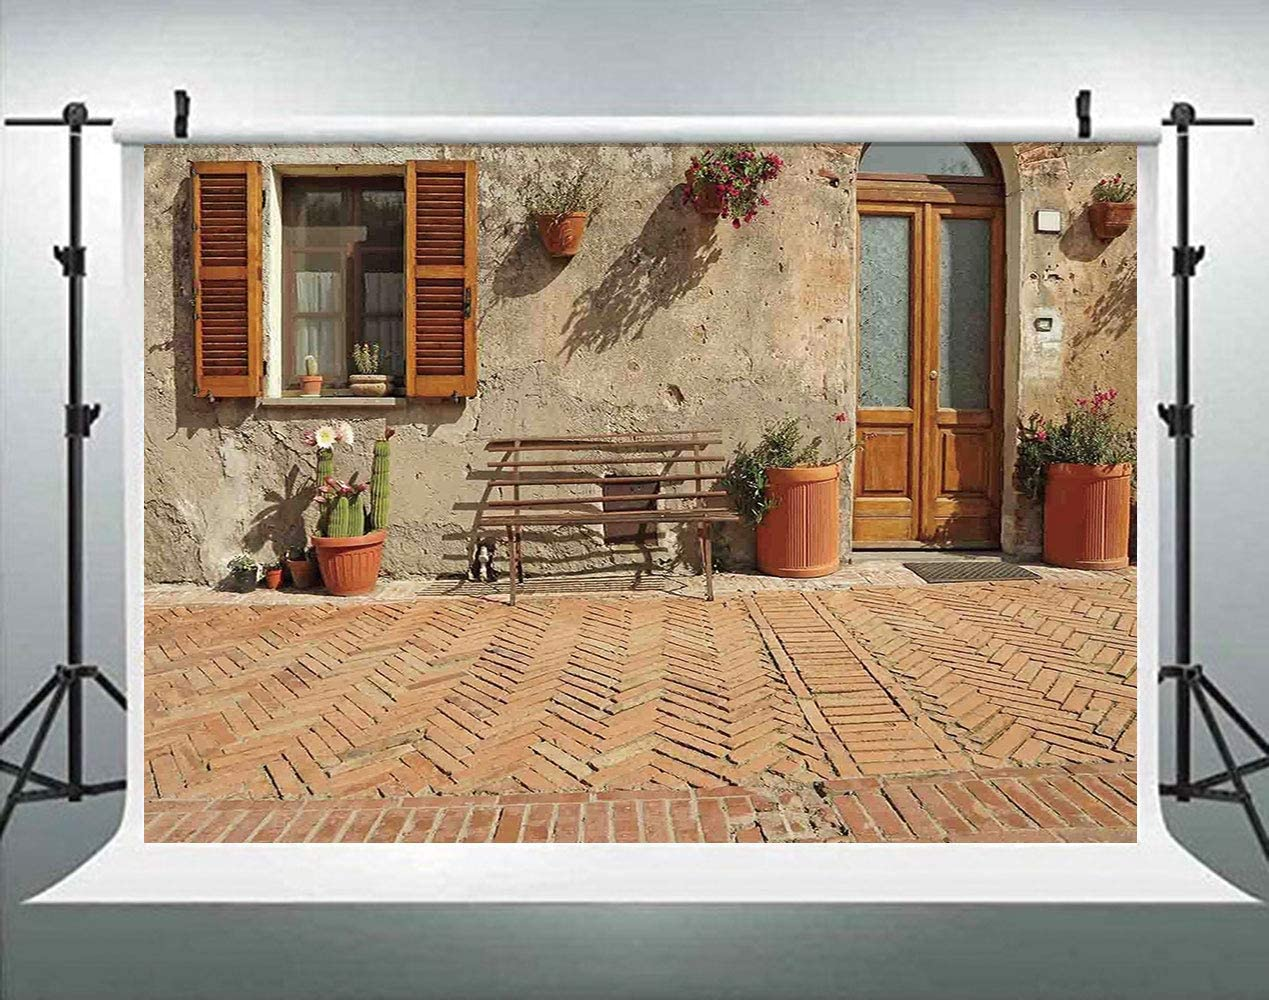 ALUONI 5x3ft Tuscan,Porch with Colorful Flowers at an Old Street in Town in Italy Photography Backdrop Photo Backdrops Portrait Background Studio Props AM032199